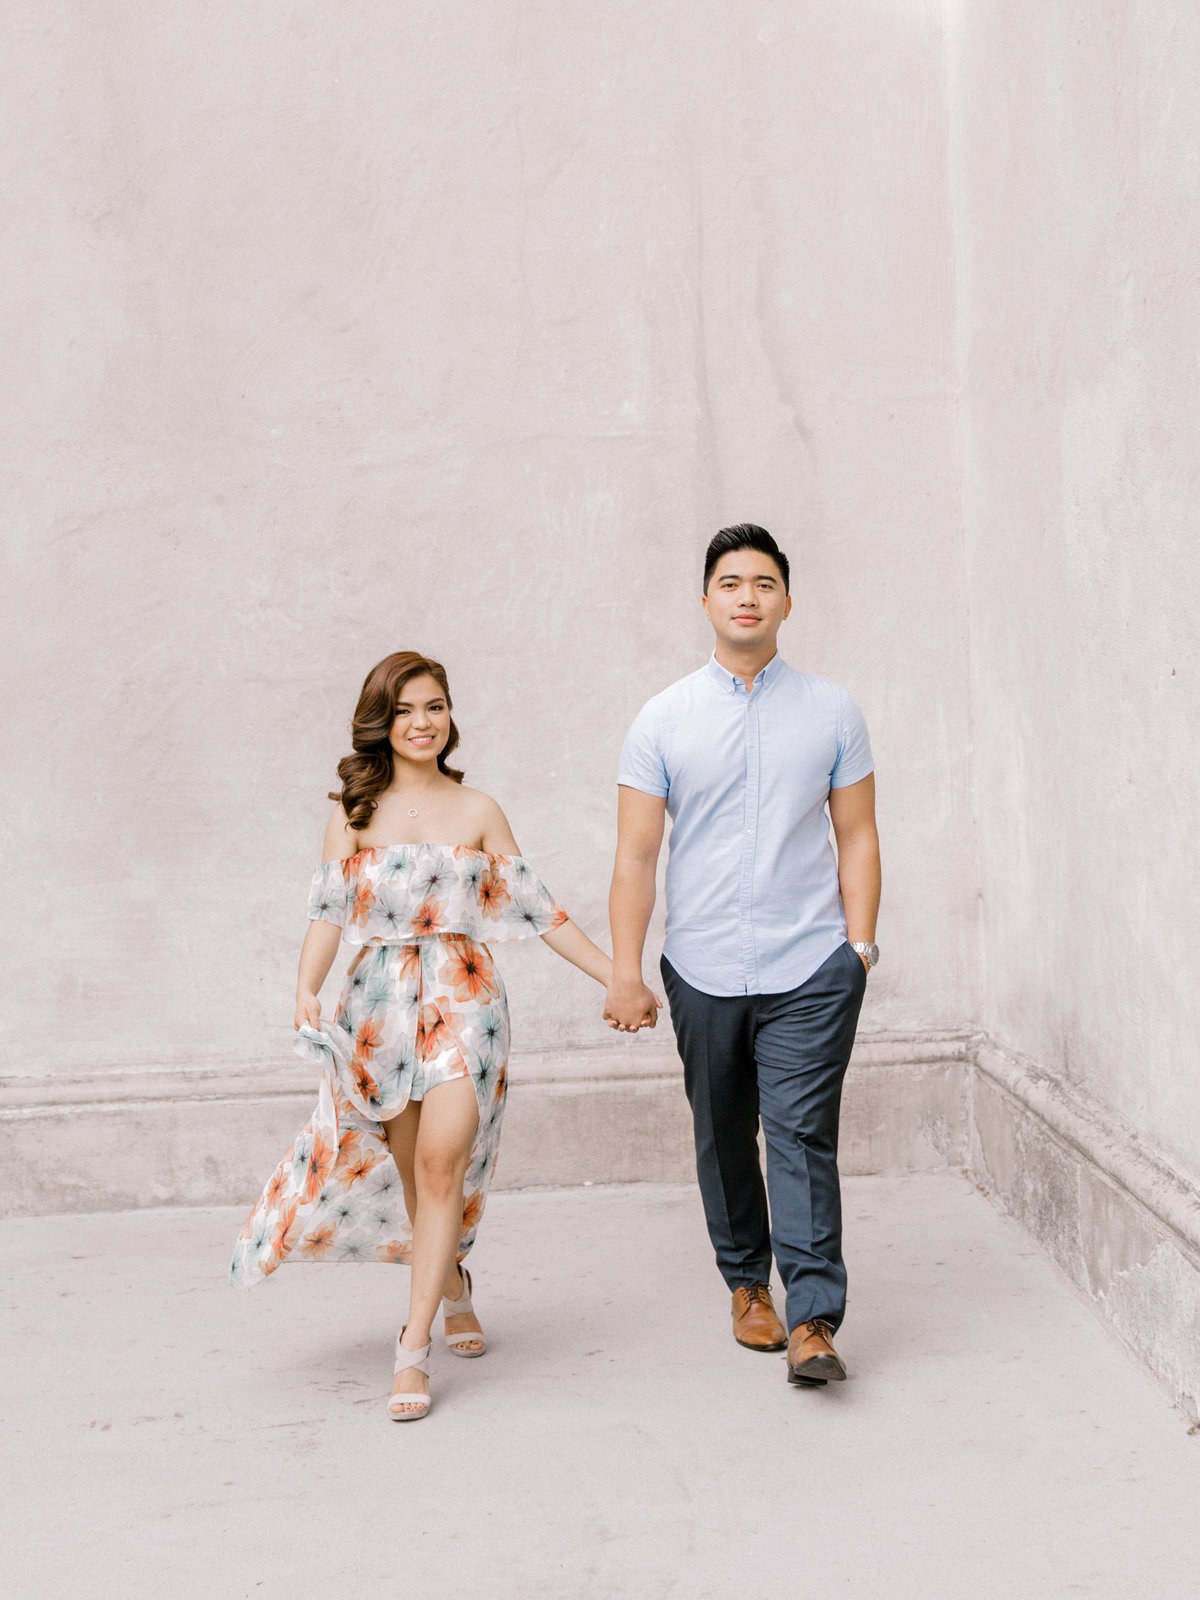 Babsie-Ly-Photography-fine-art-film-destination-engagement-photographer-san-diego-california-asian-Philippines-filipino-bride-balboa-park-006